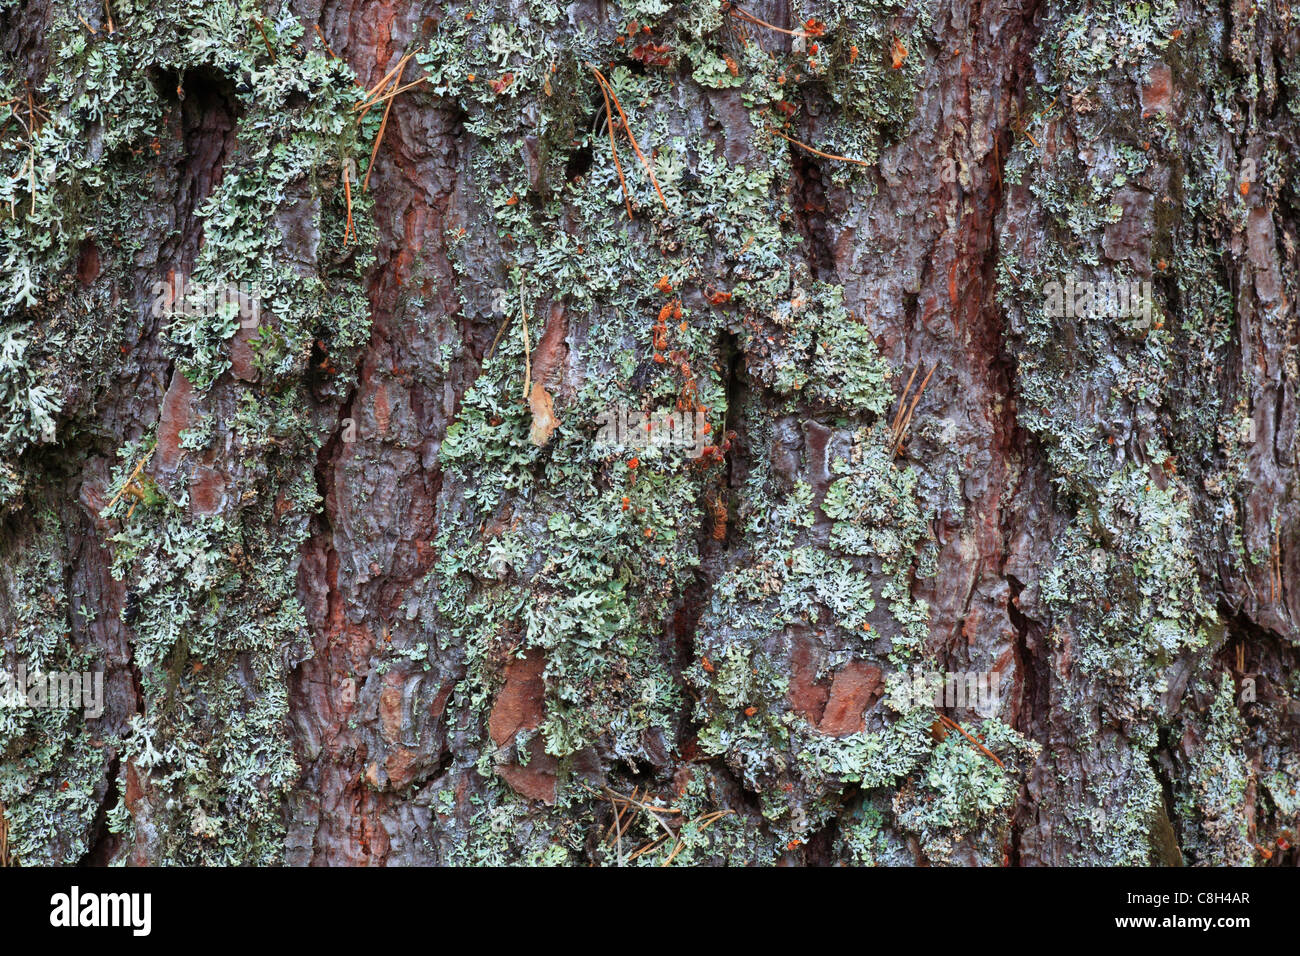 Wood covered with lichens stock photos wood covered with for What is a tree trunk covered with 4 letters